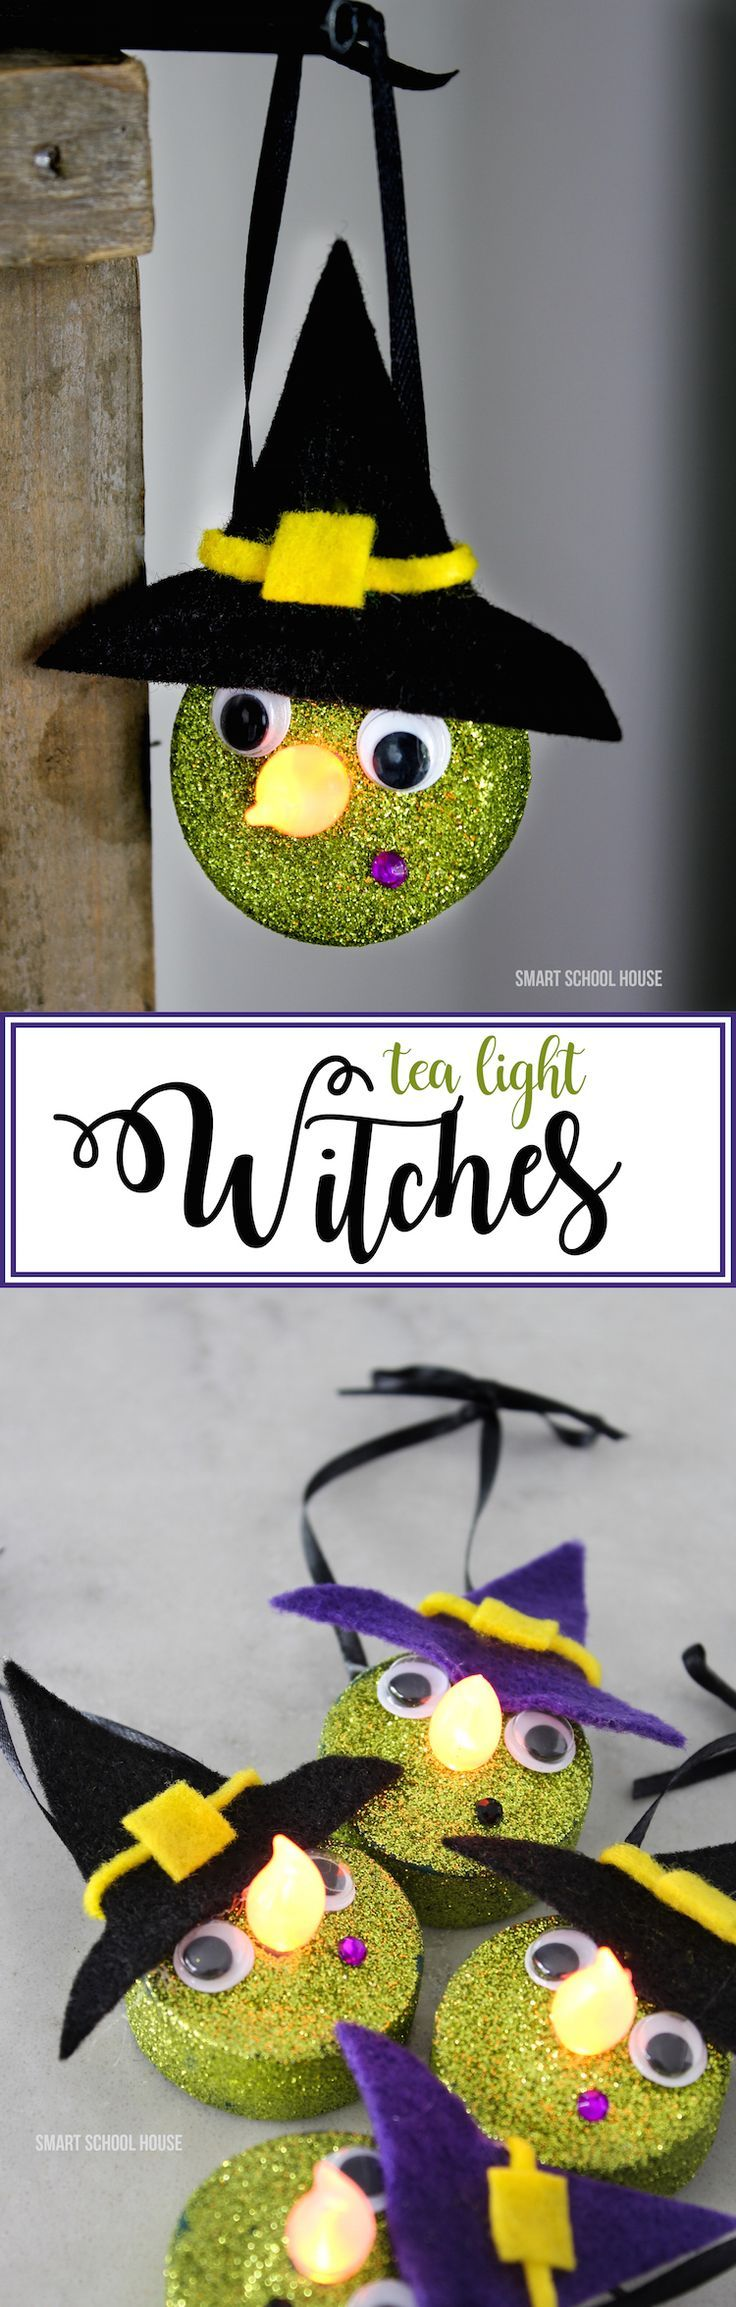 Tea Light Witches | Halloween | Pinterest | Herbst, Nähmuster und ...